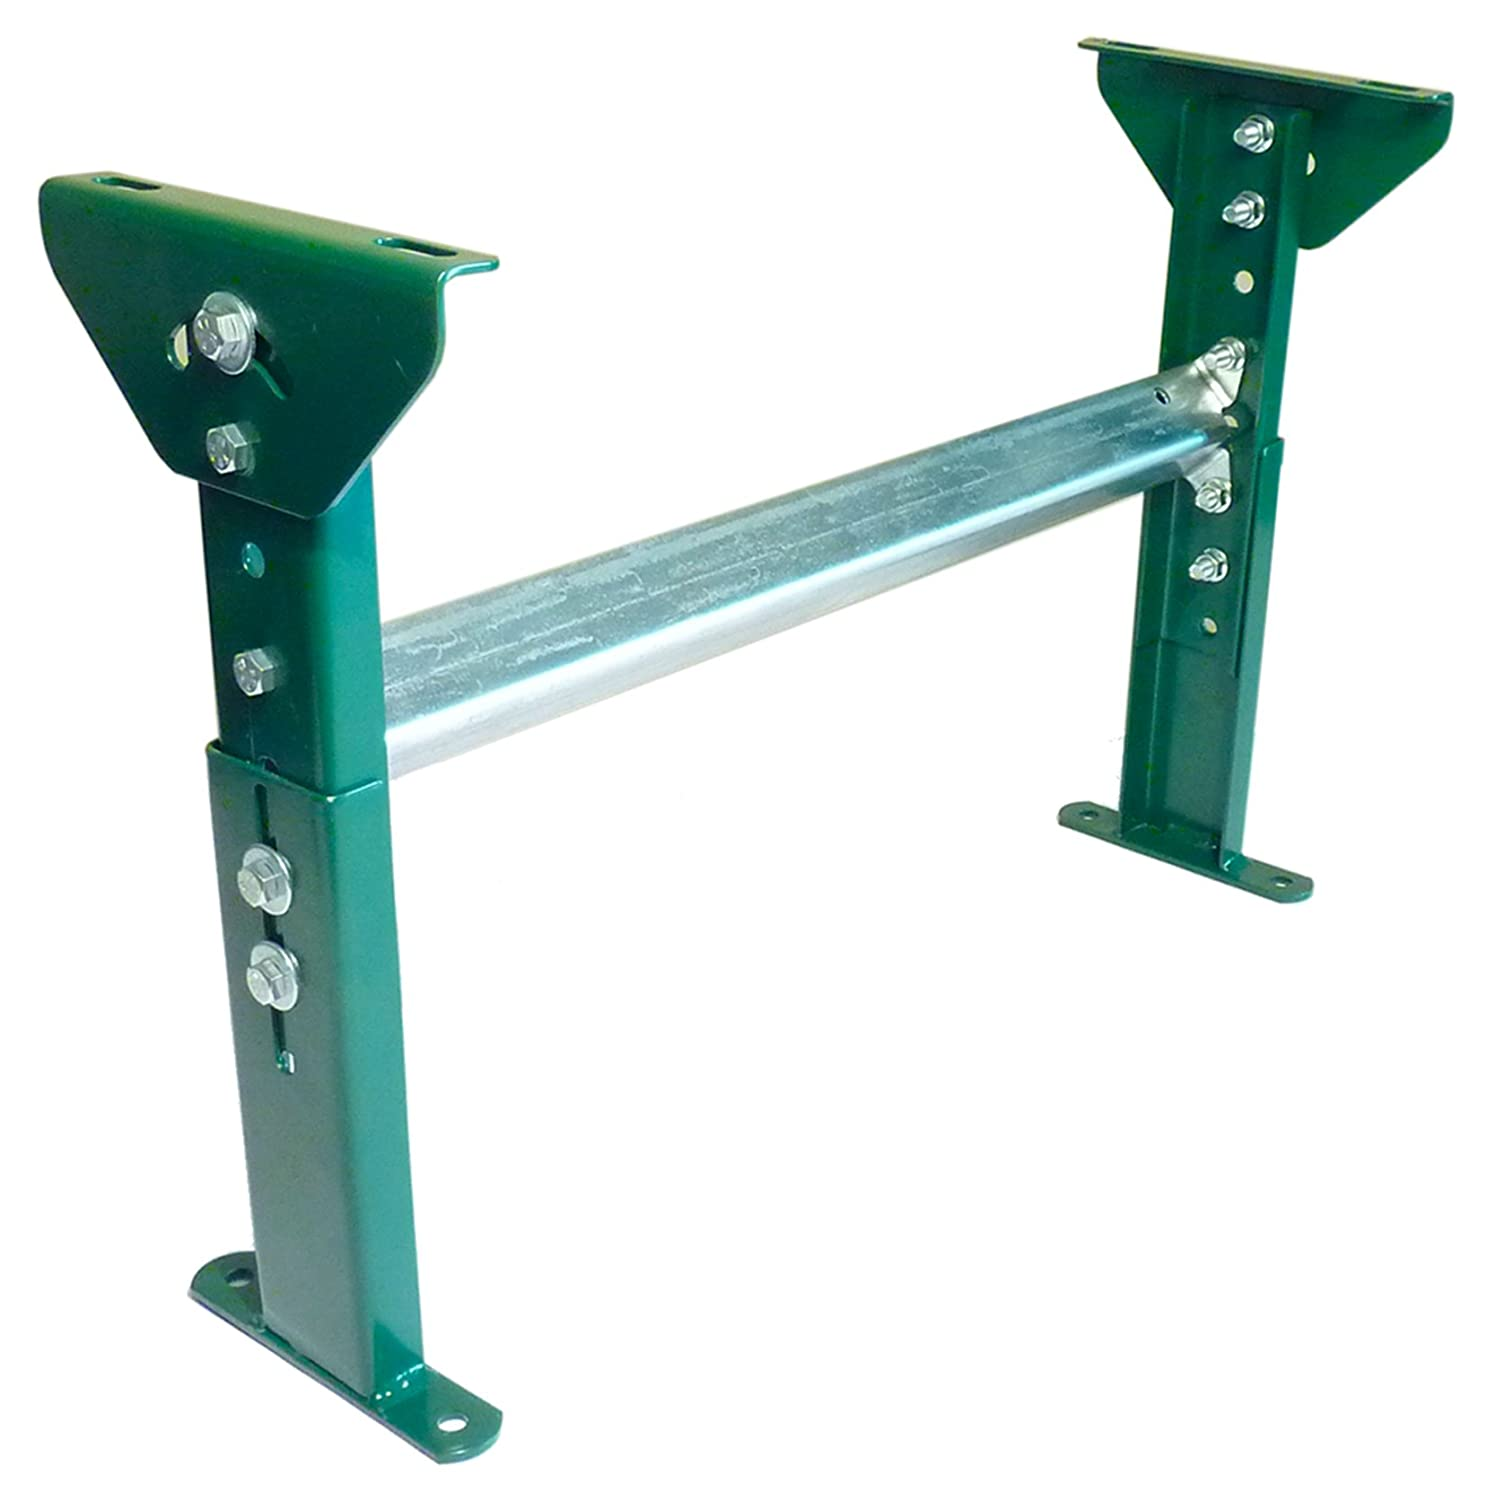 8 Length Top of Stand Heights of 19-1//2 to 31 1500 lb Capacity Ashland Conveyor AH15M25B16 Adjustable Height Light Duty H-Stand for 16 Between Frame Width Conveyor Systems 19.1875 Width